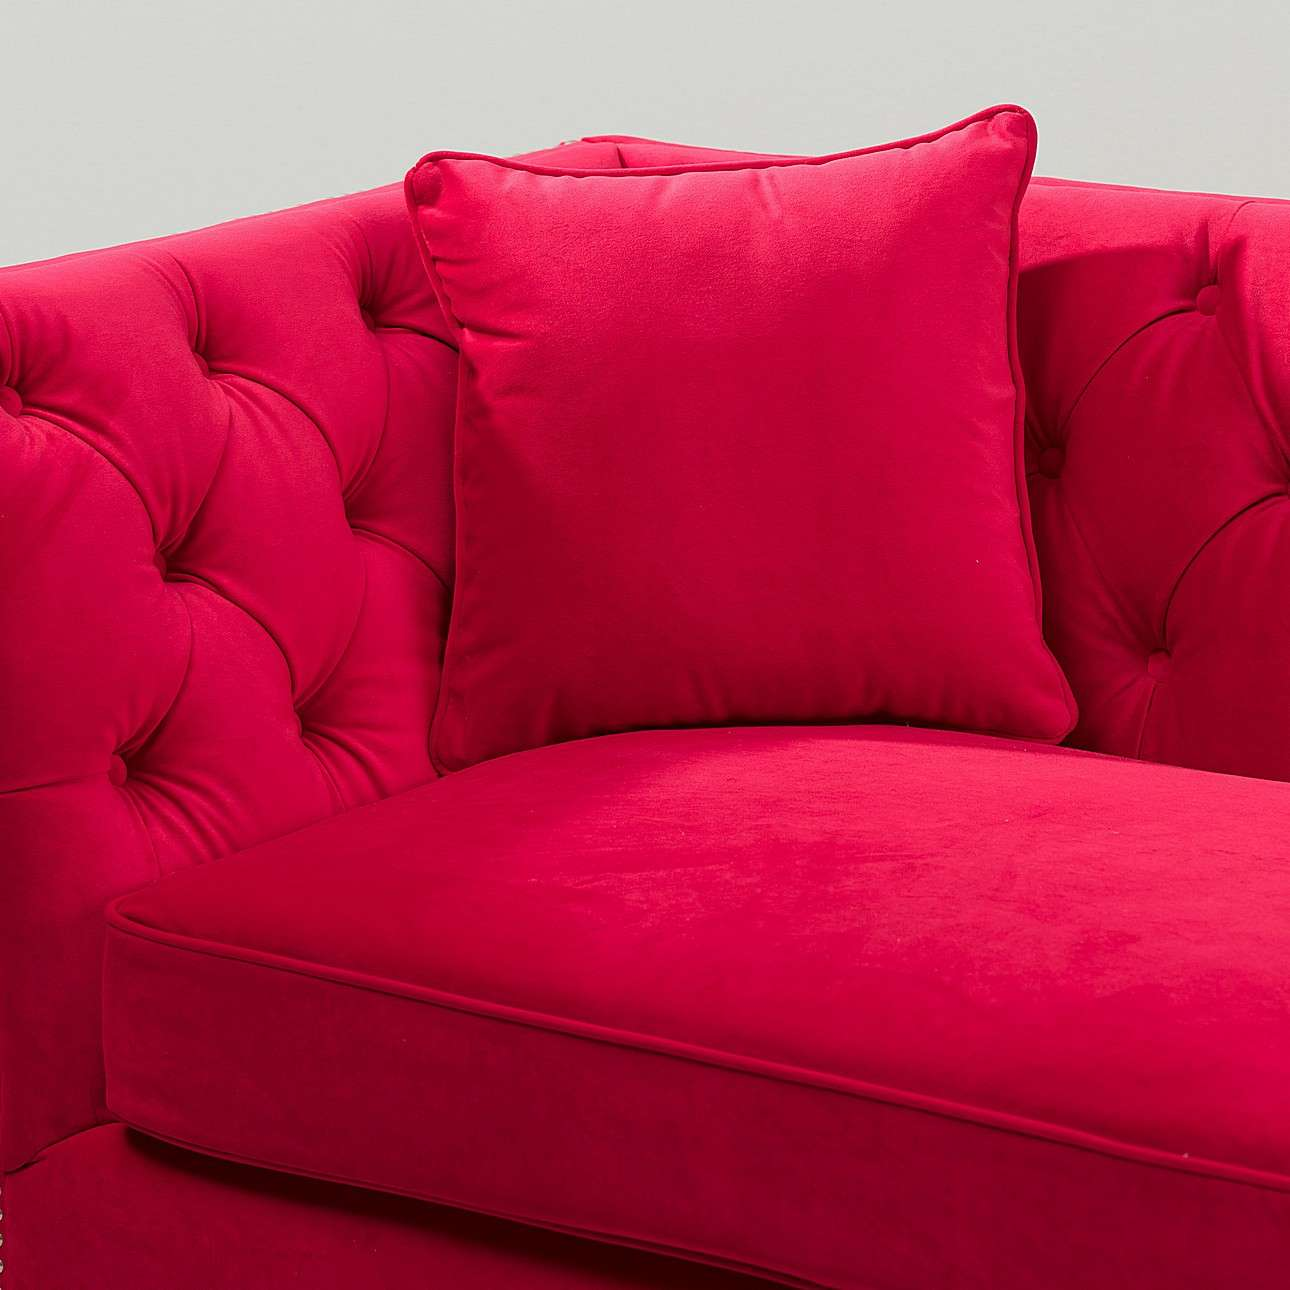 Sofa Chesterfield Modern Velvet Raspberry Red 3-os.